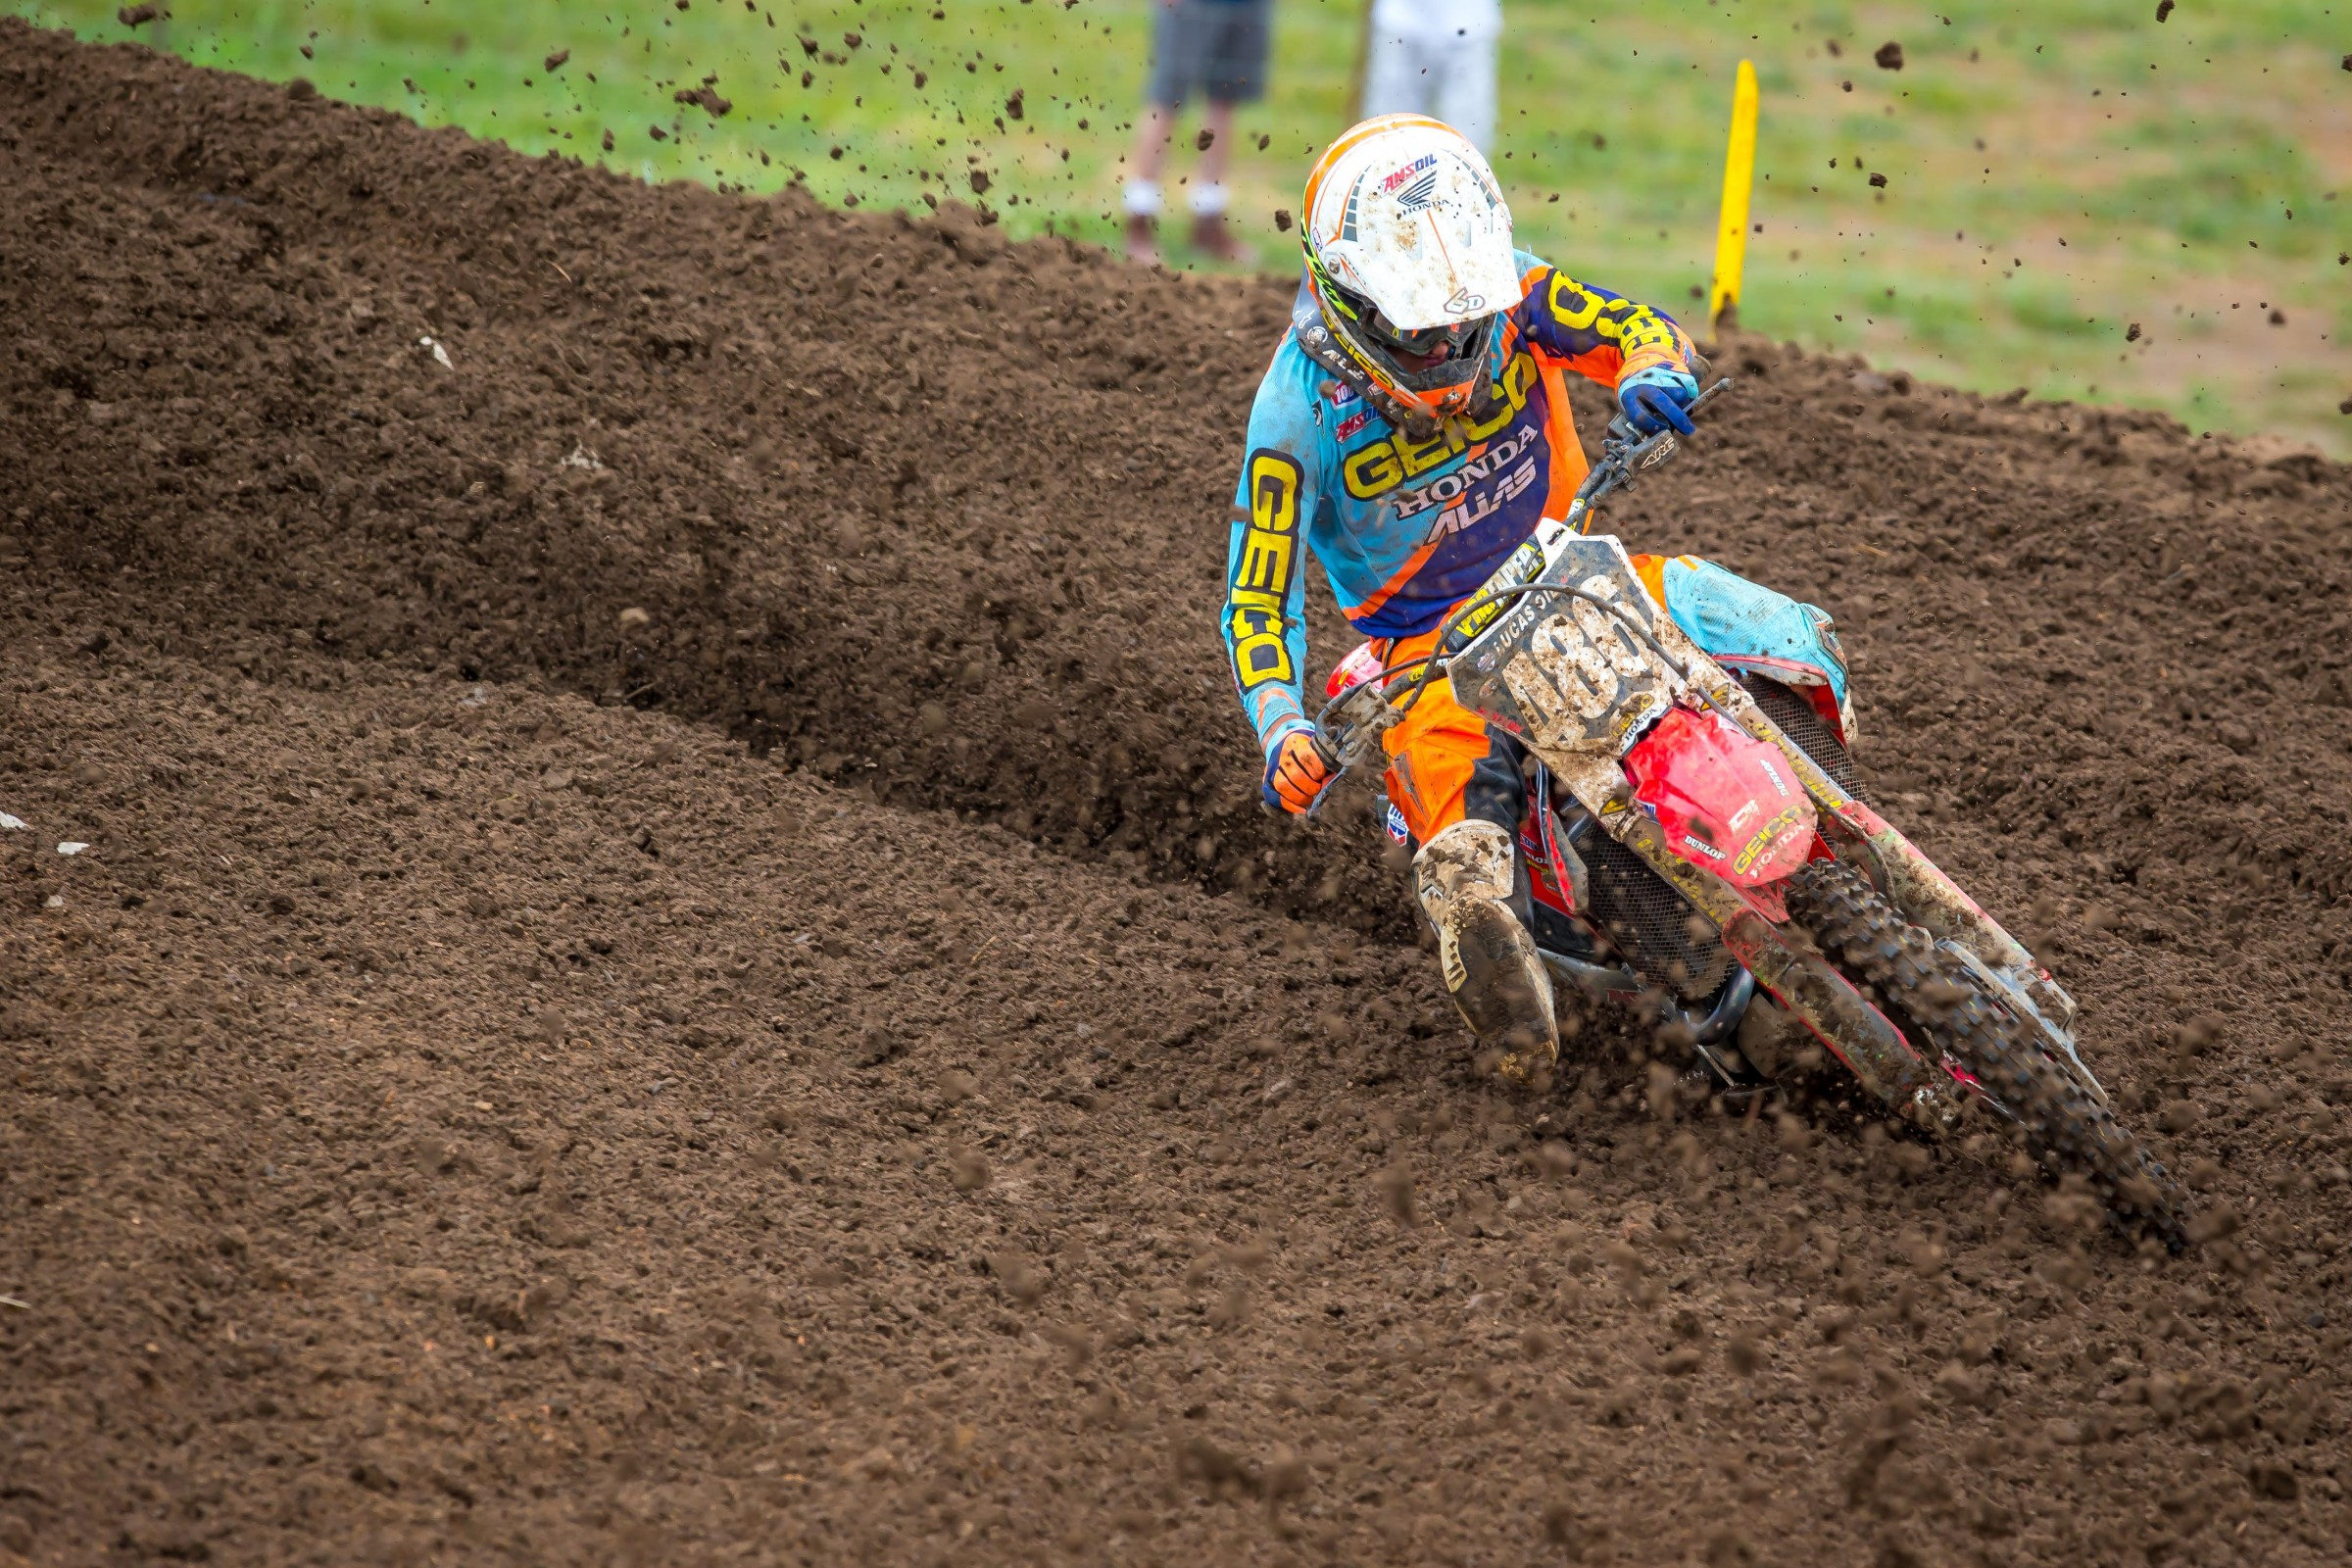 Chase Sexton finished 11th overall in his second pro race.